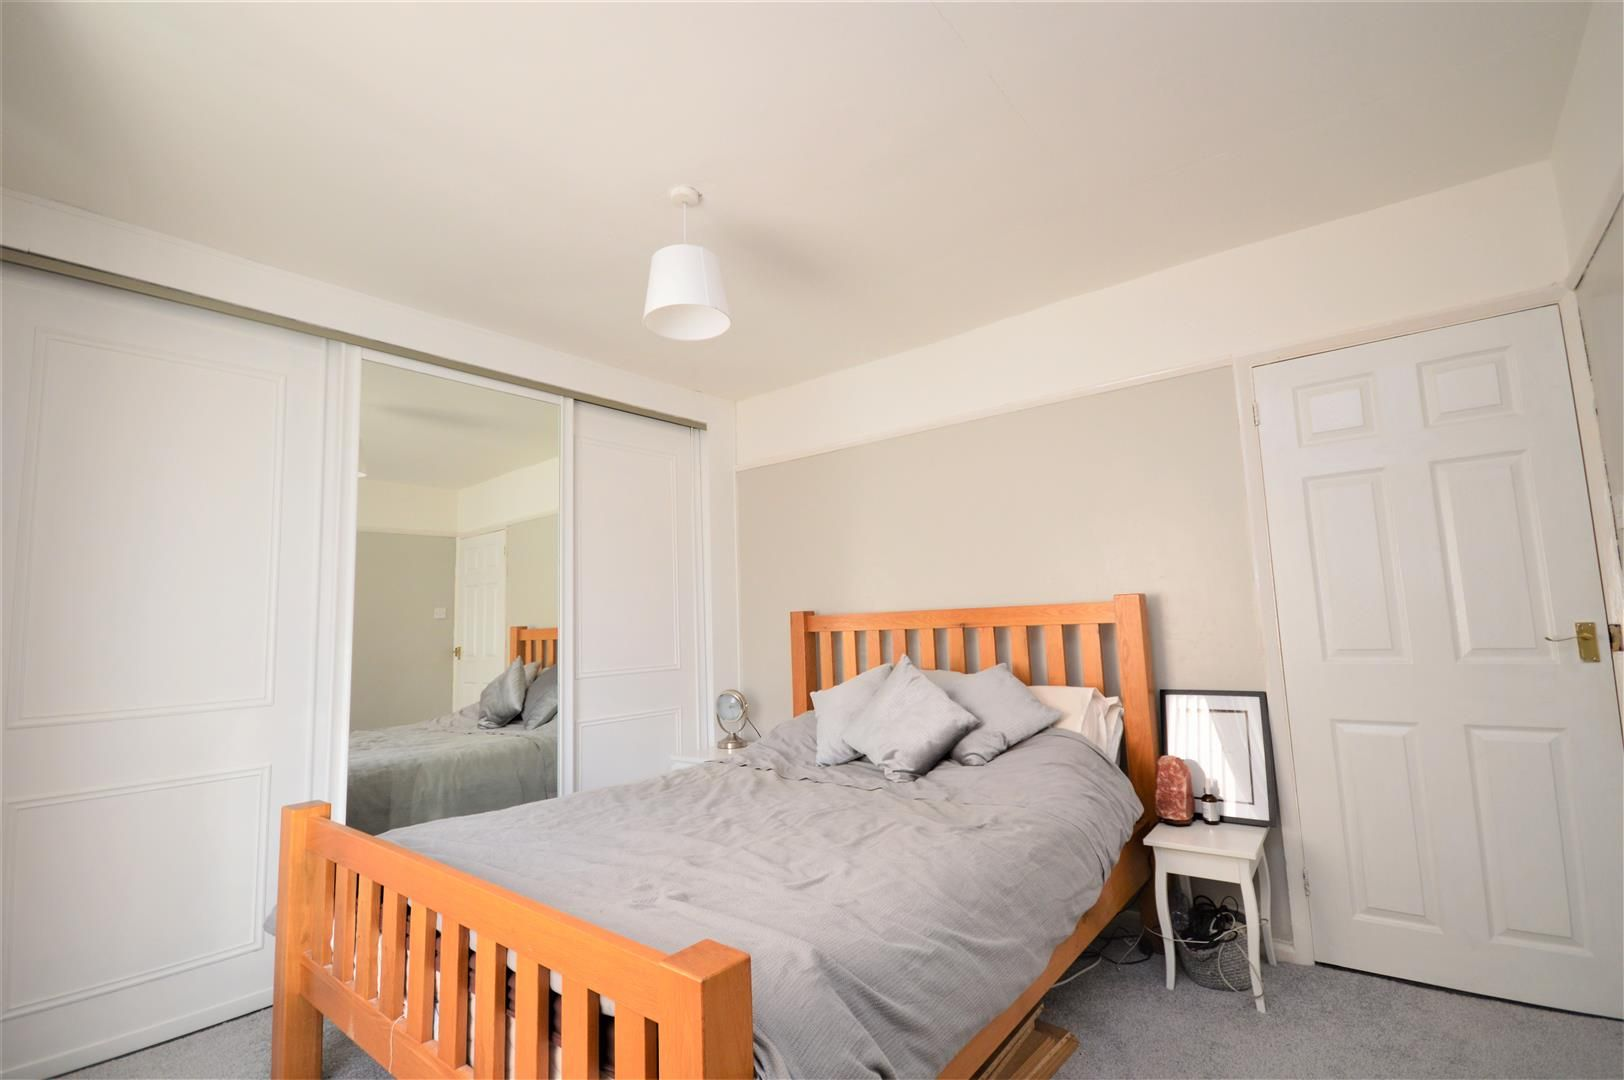 3 bed end-of-terrace for sale in Hereford 10